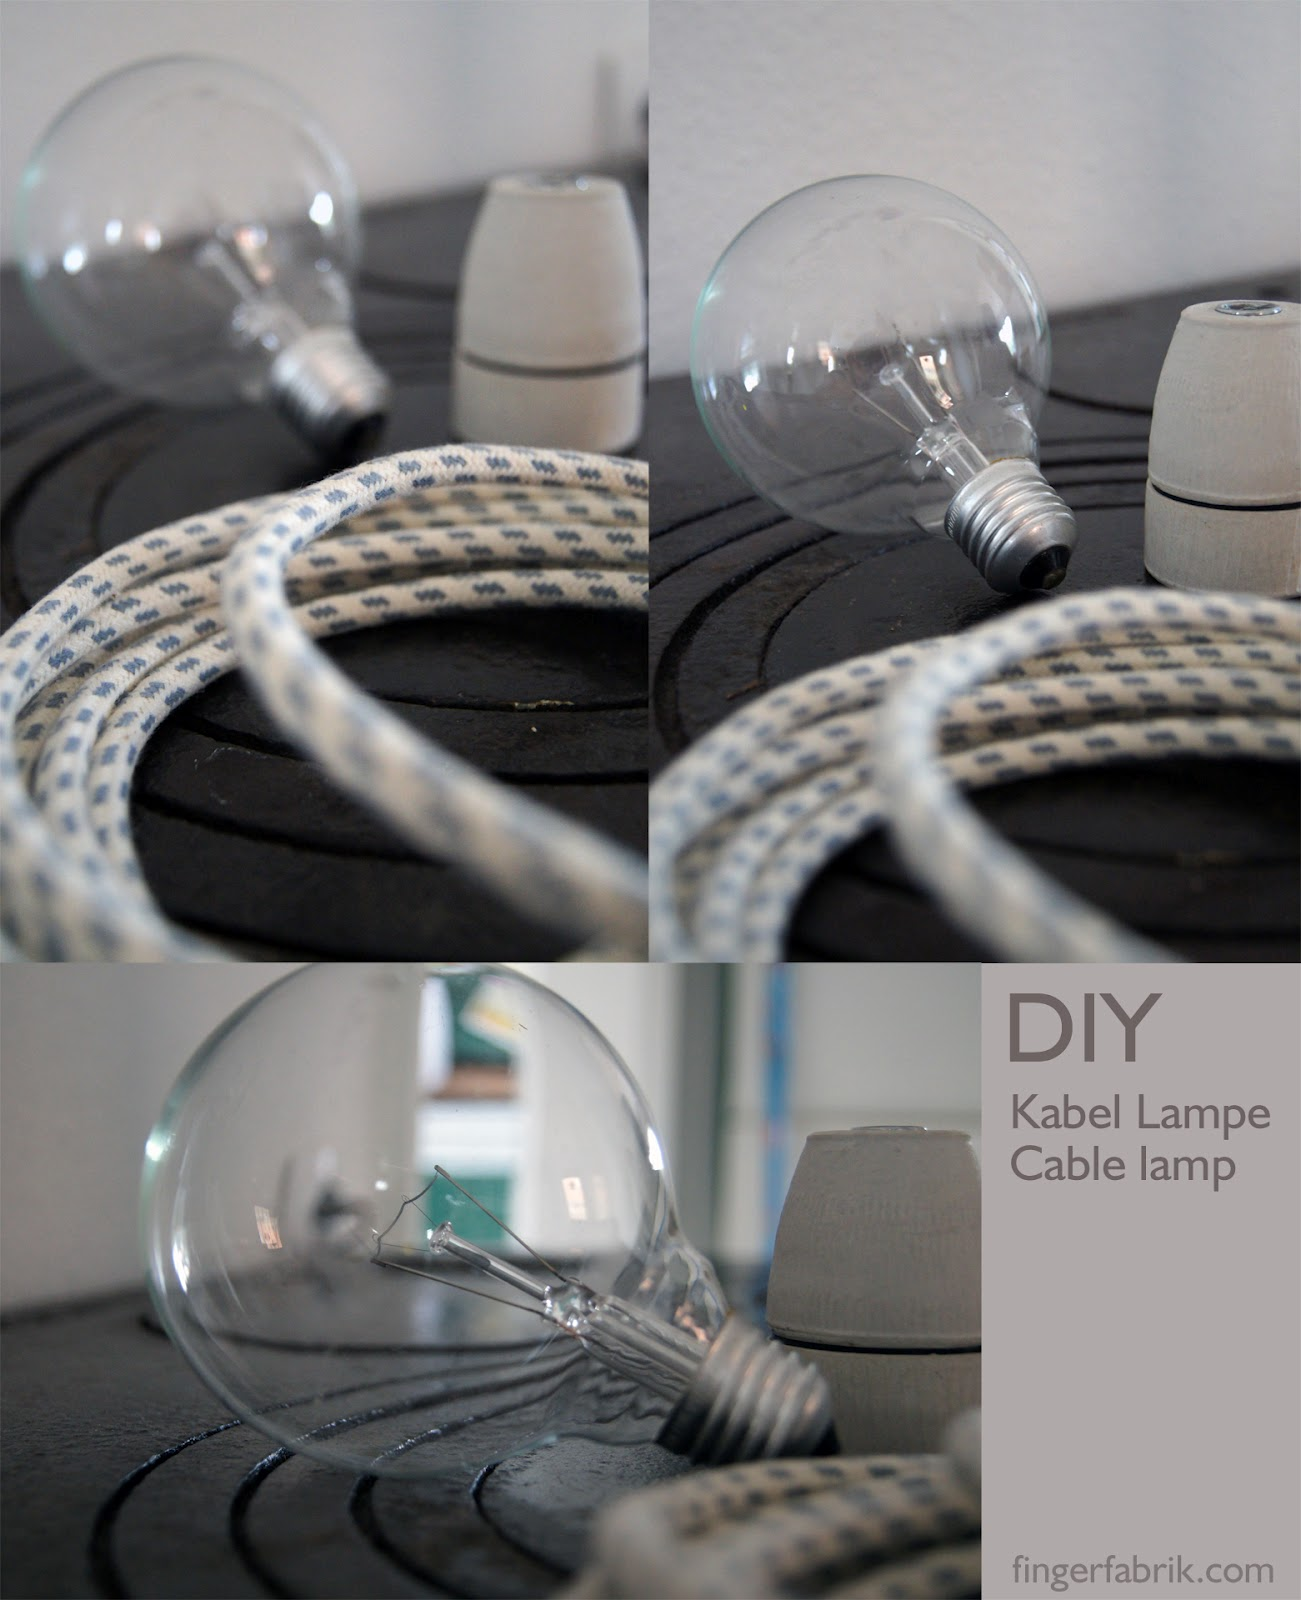 fingerfabrik diy cable lamp tutorial kabel lampe selber bauen. Black Bedroom Furniture Sets. Home Design Ideas